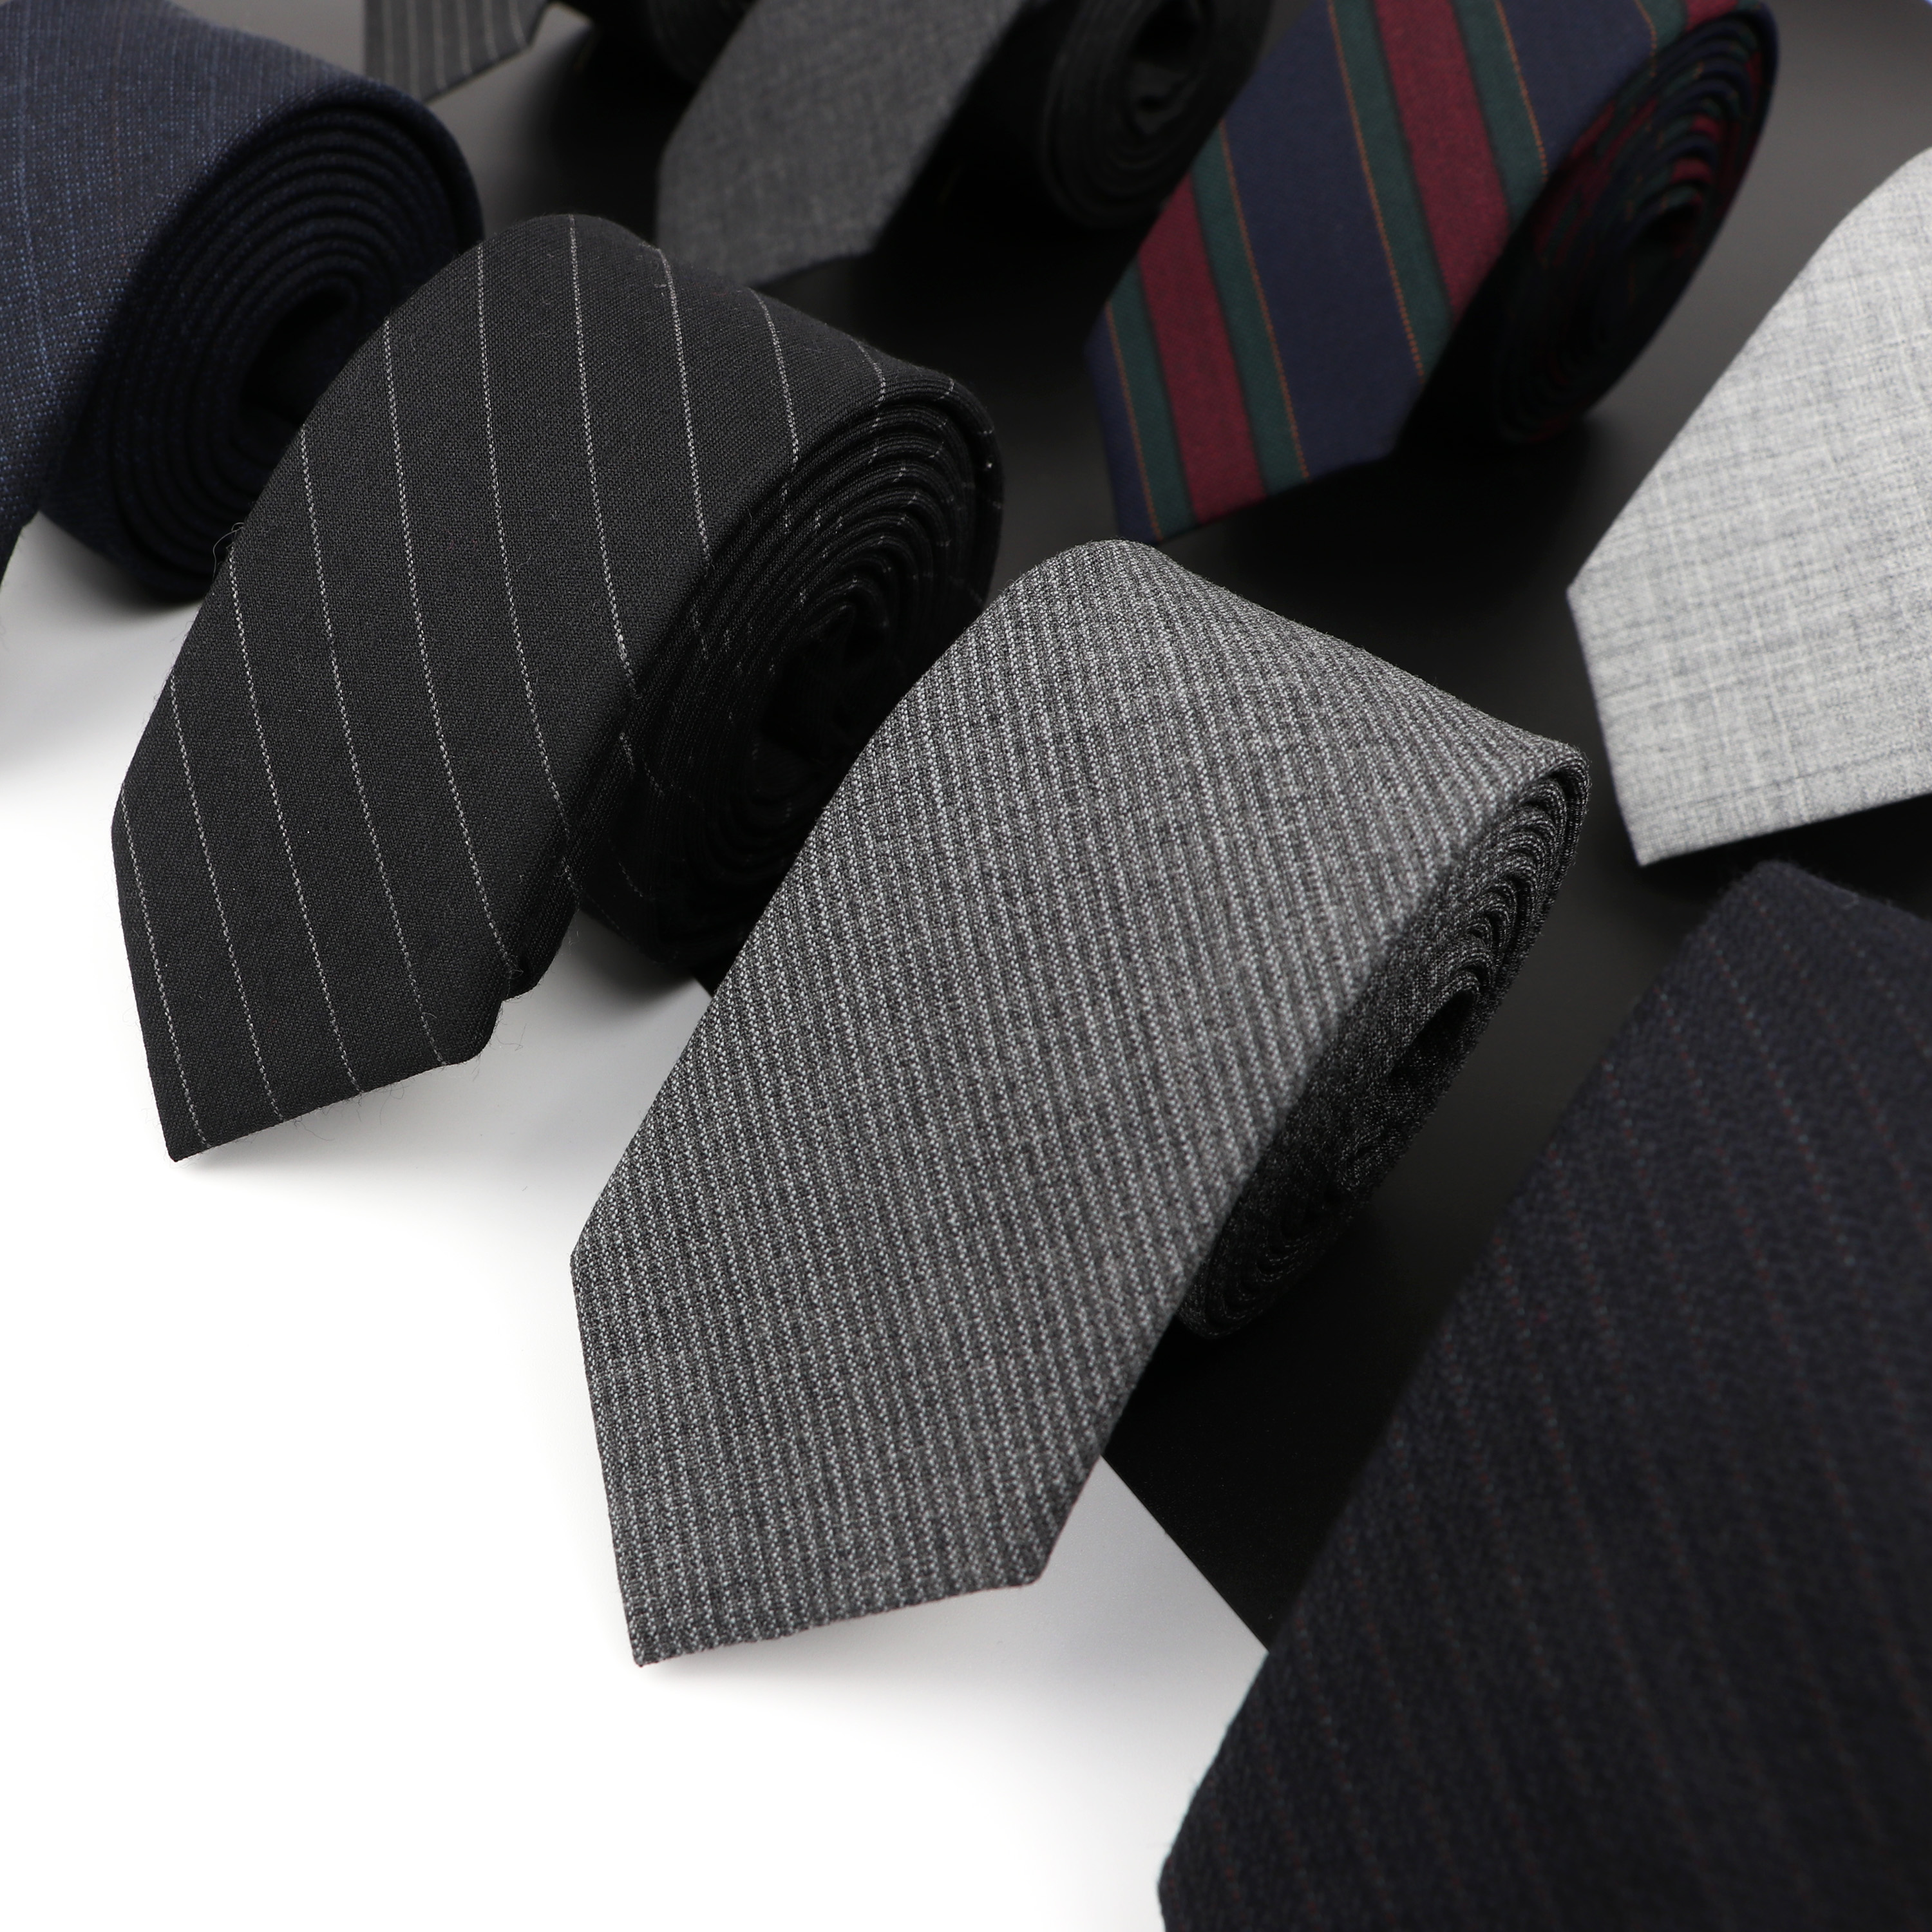 High Quality Classical Color Black Grey Skinny 100% Wool Tie Men Necktie For Business Meeting Fashion Shirt Dress Accessories